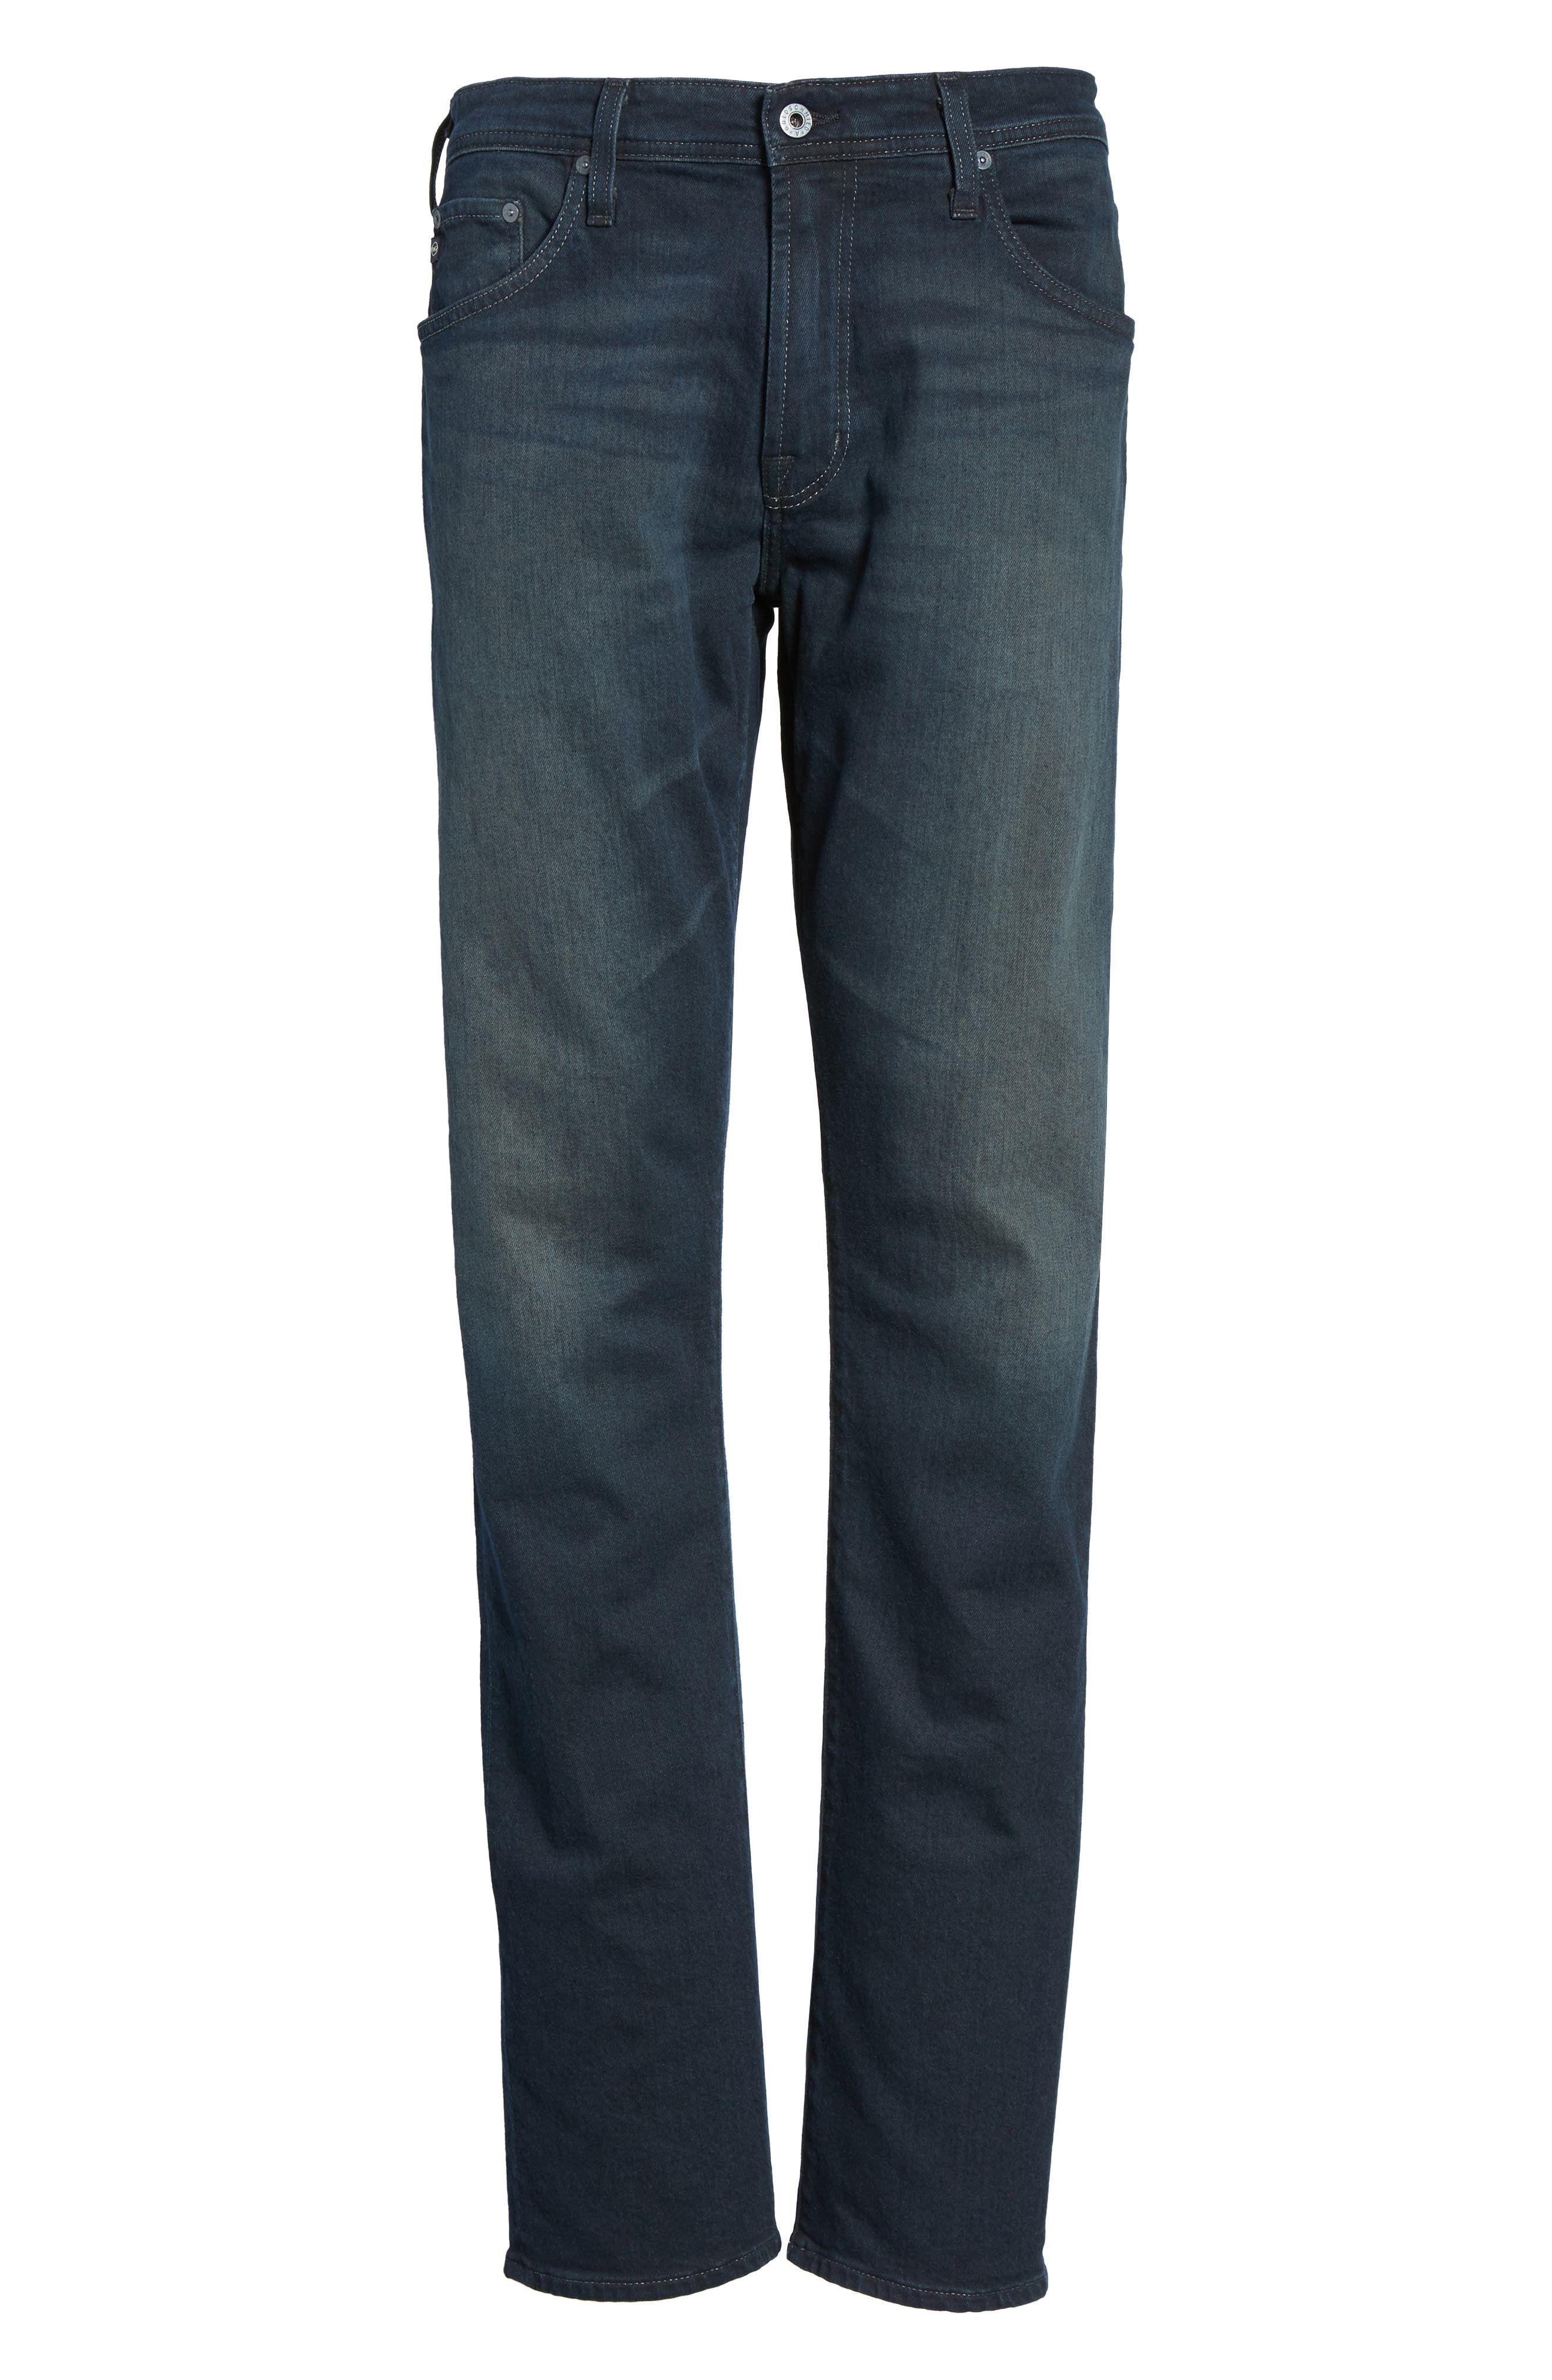 Ives Straight Fit Jeans,                             Alternate thumbnail 6, color,                             433